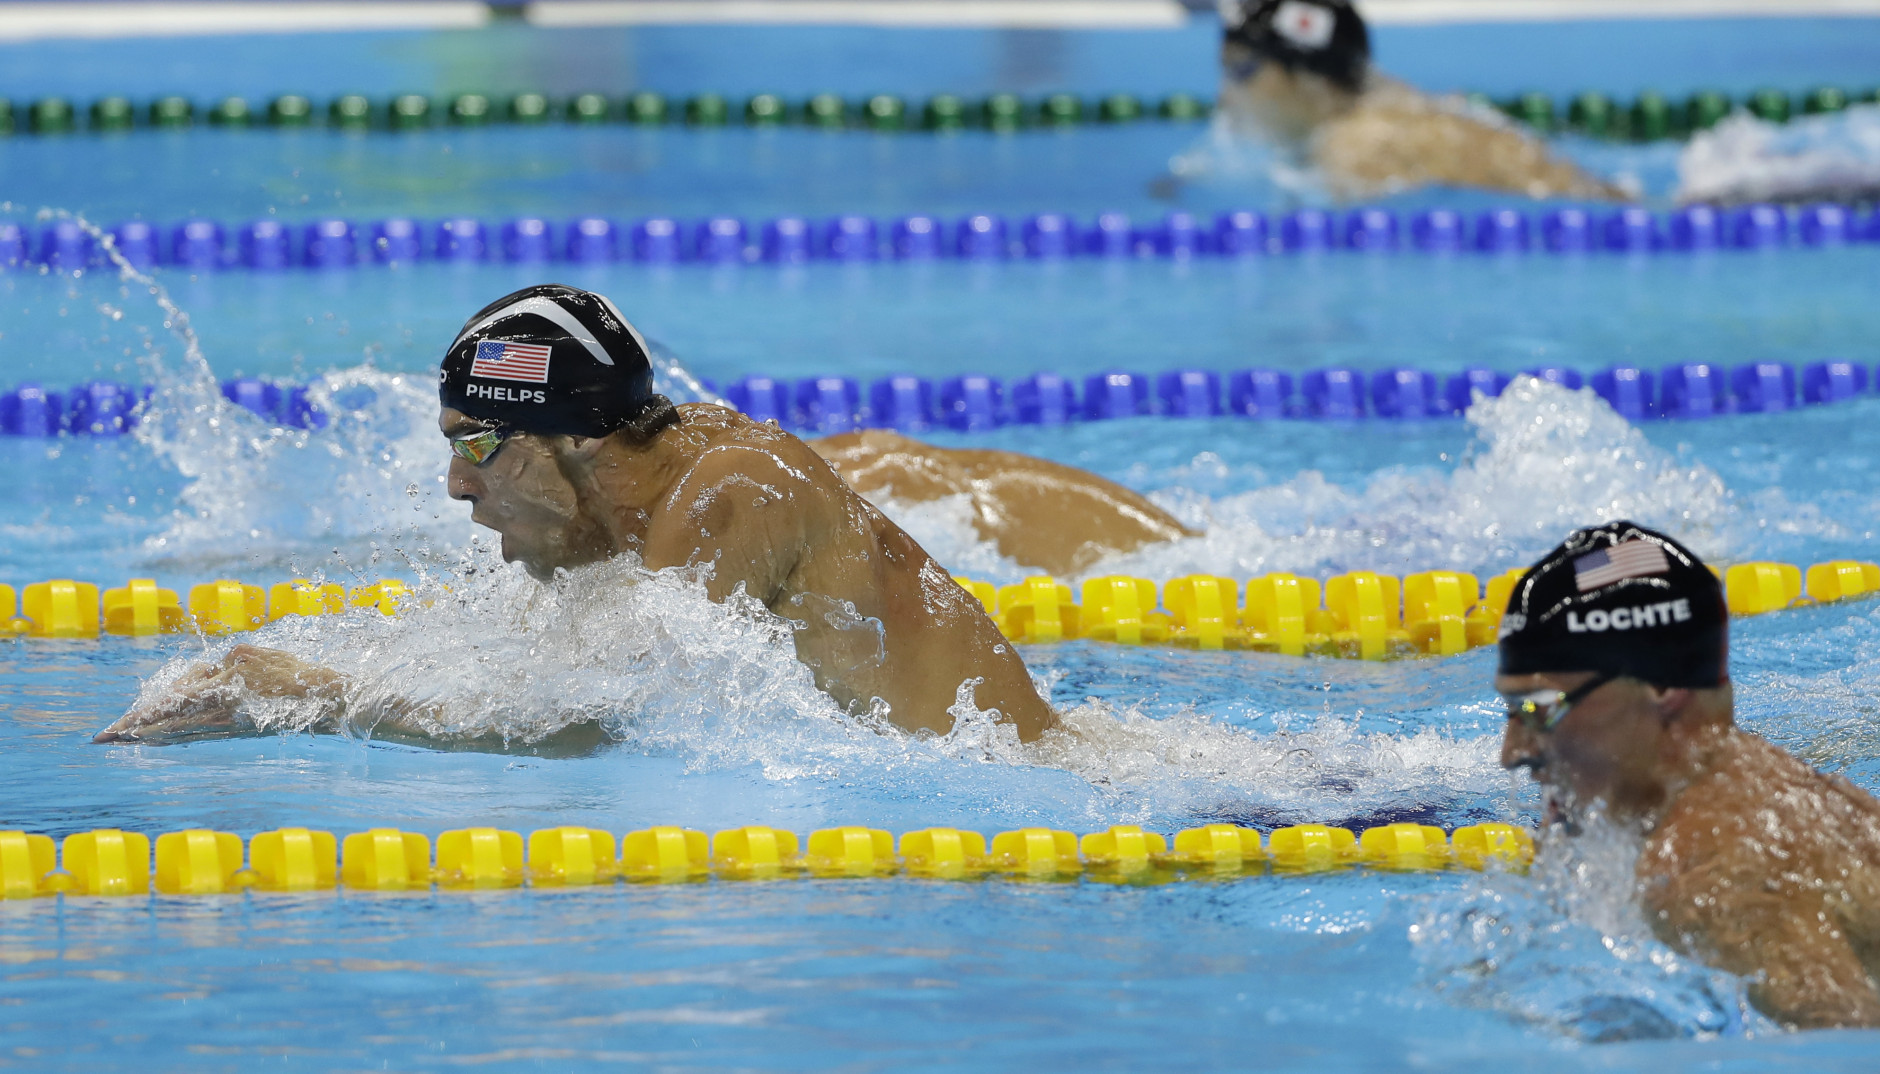 United States' Michael Phelps competes in the final of the men's 200-meter individual medley during the swimming competitions at the 2016 Summer Olympics, Thursday, Aug. 11, 2016, in Rio de Janeiro, Brazil. (AP Photo/Matt Slocum)